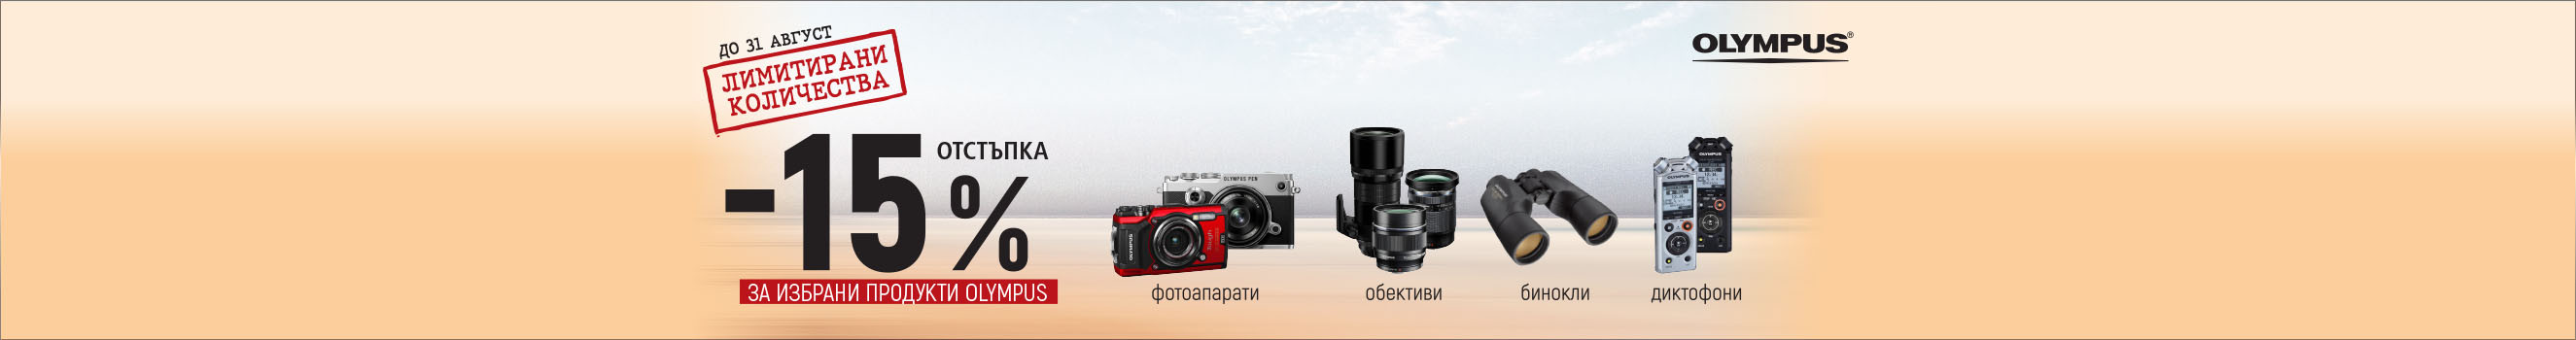 Olympus - cameras, lenses, voice recorders and binoculars with 15% discount with promo code OLY15